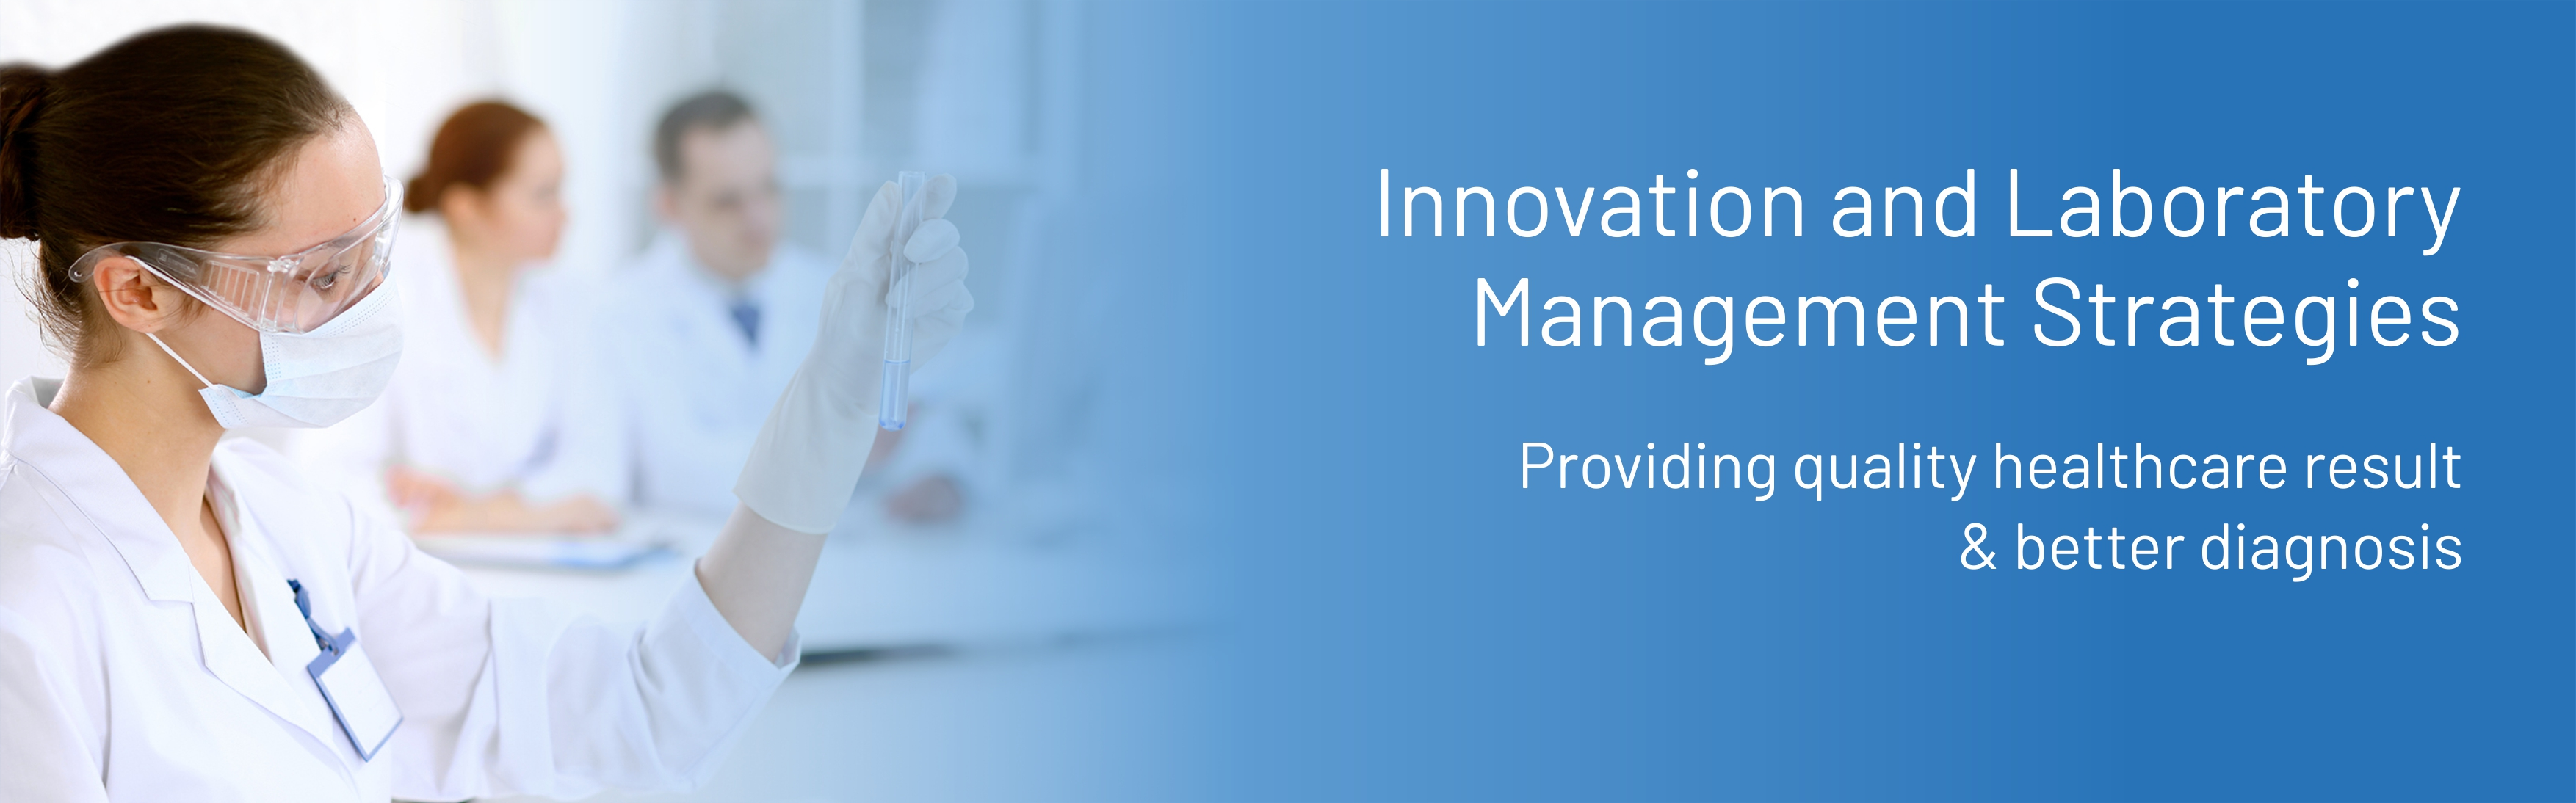 Innovation and Laboratory Management Strategies